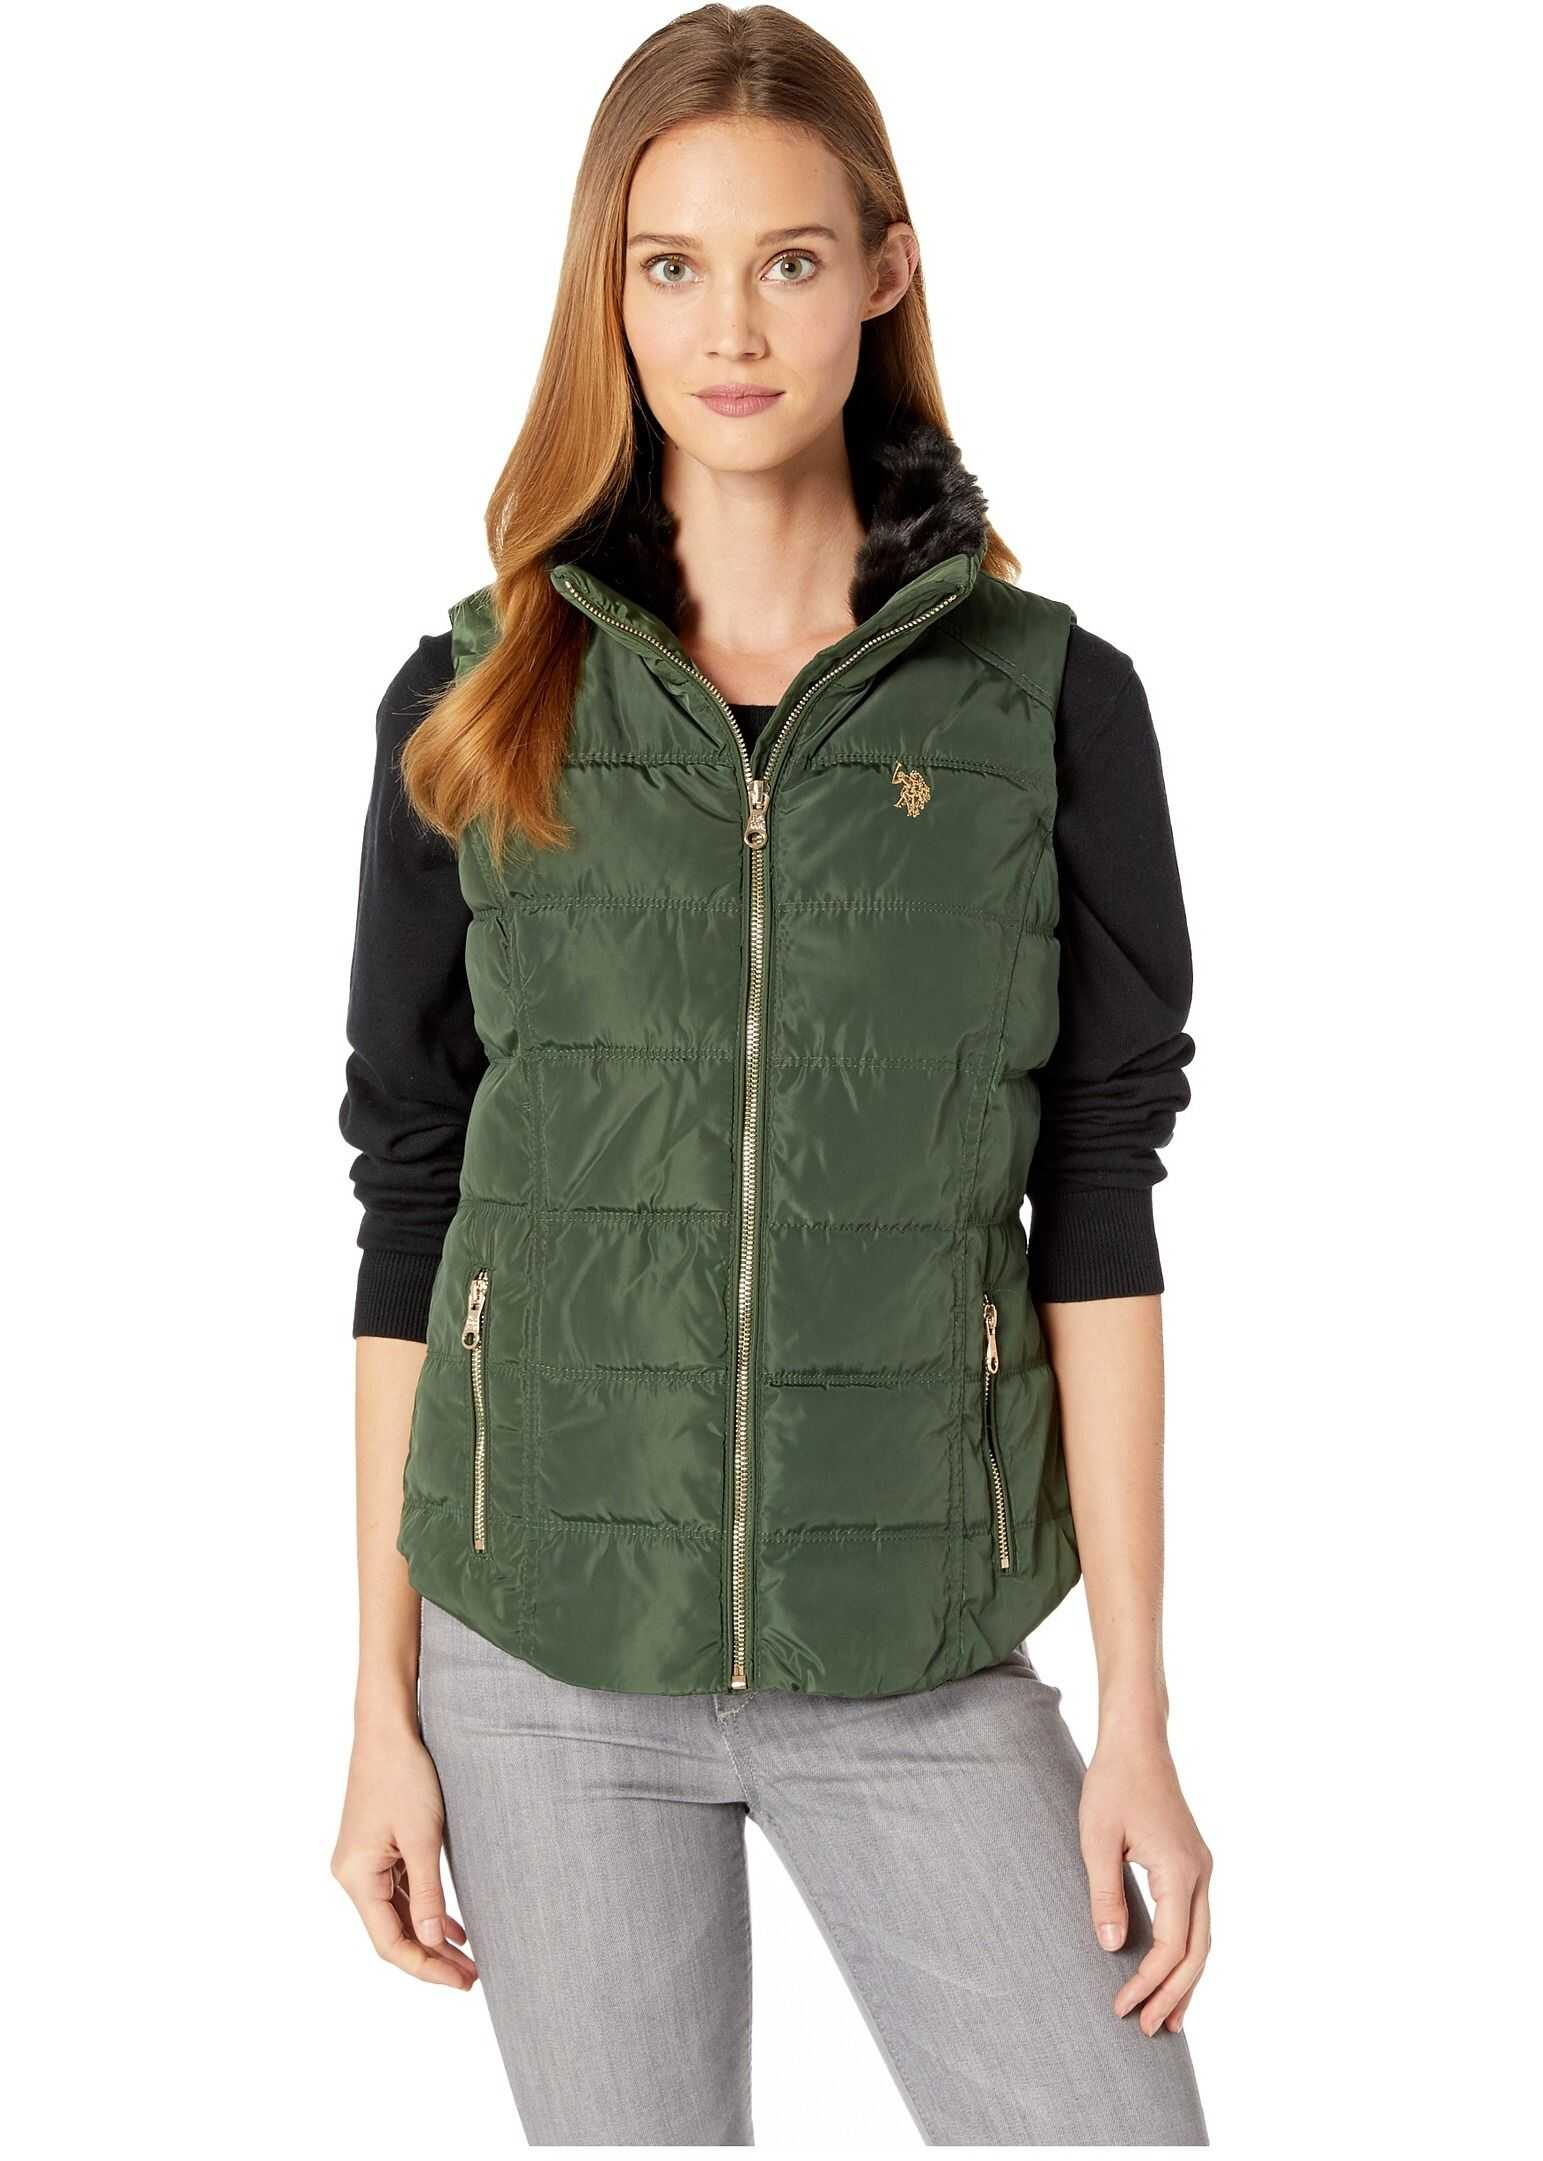 U.S. POLO ASSN. Basic Vest Olive